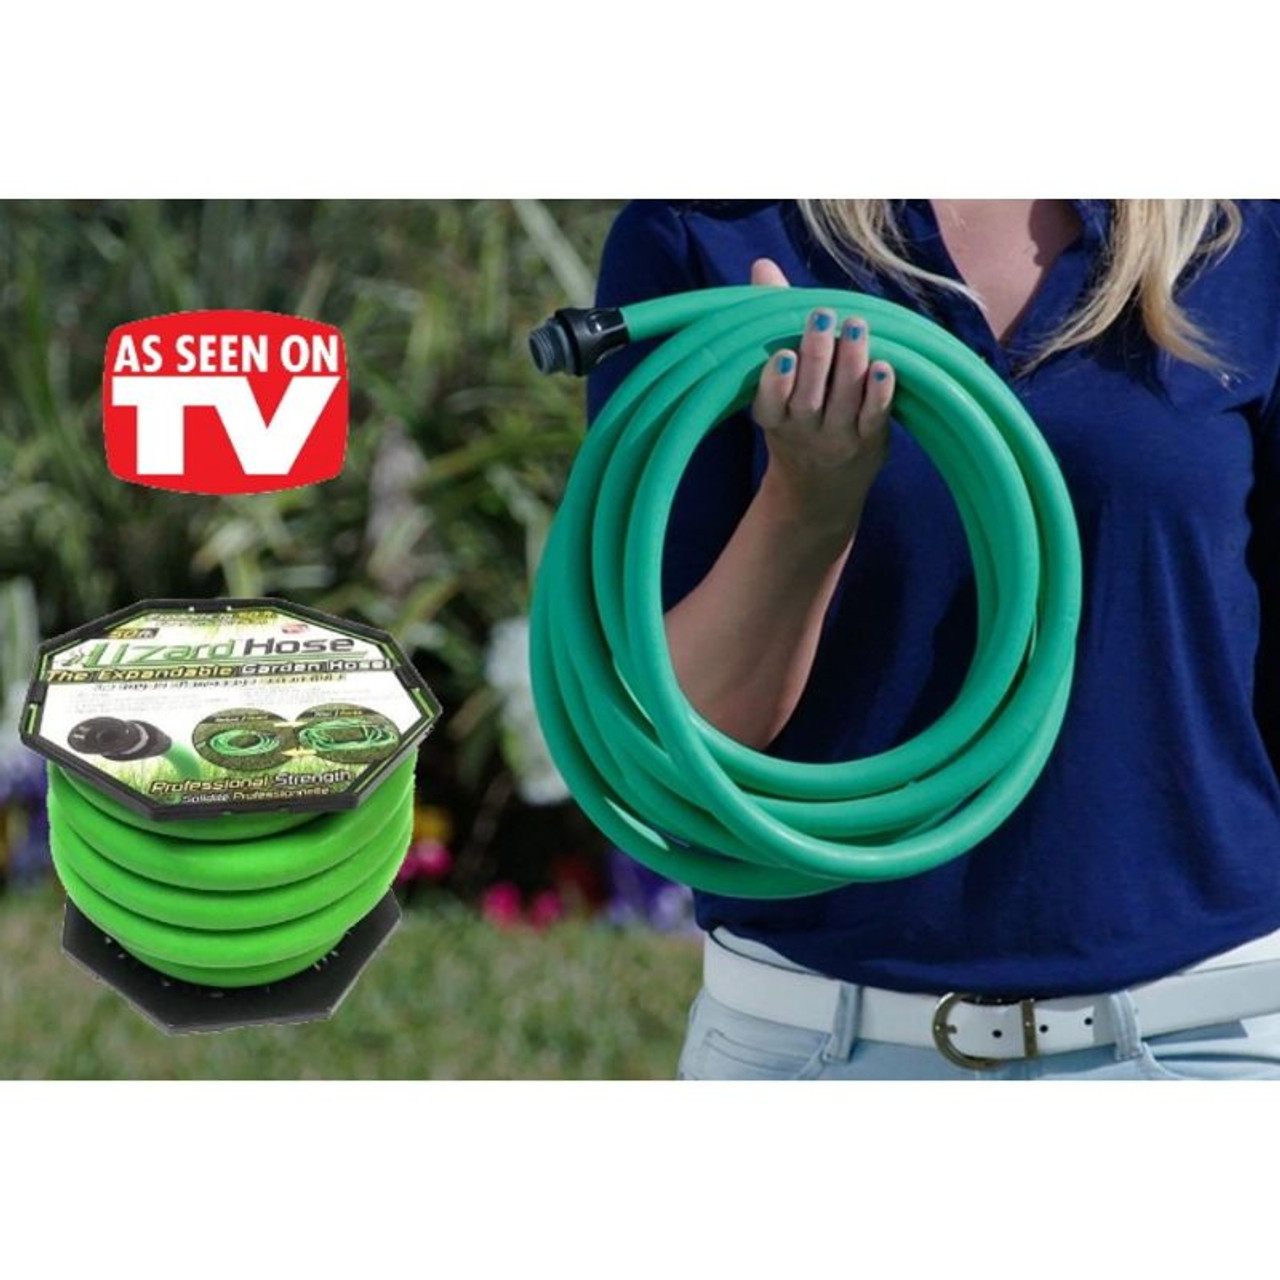 Lizard Hose The Amazing Expandable Garden Hose As Seen On TV - 50 or 100ft